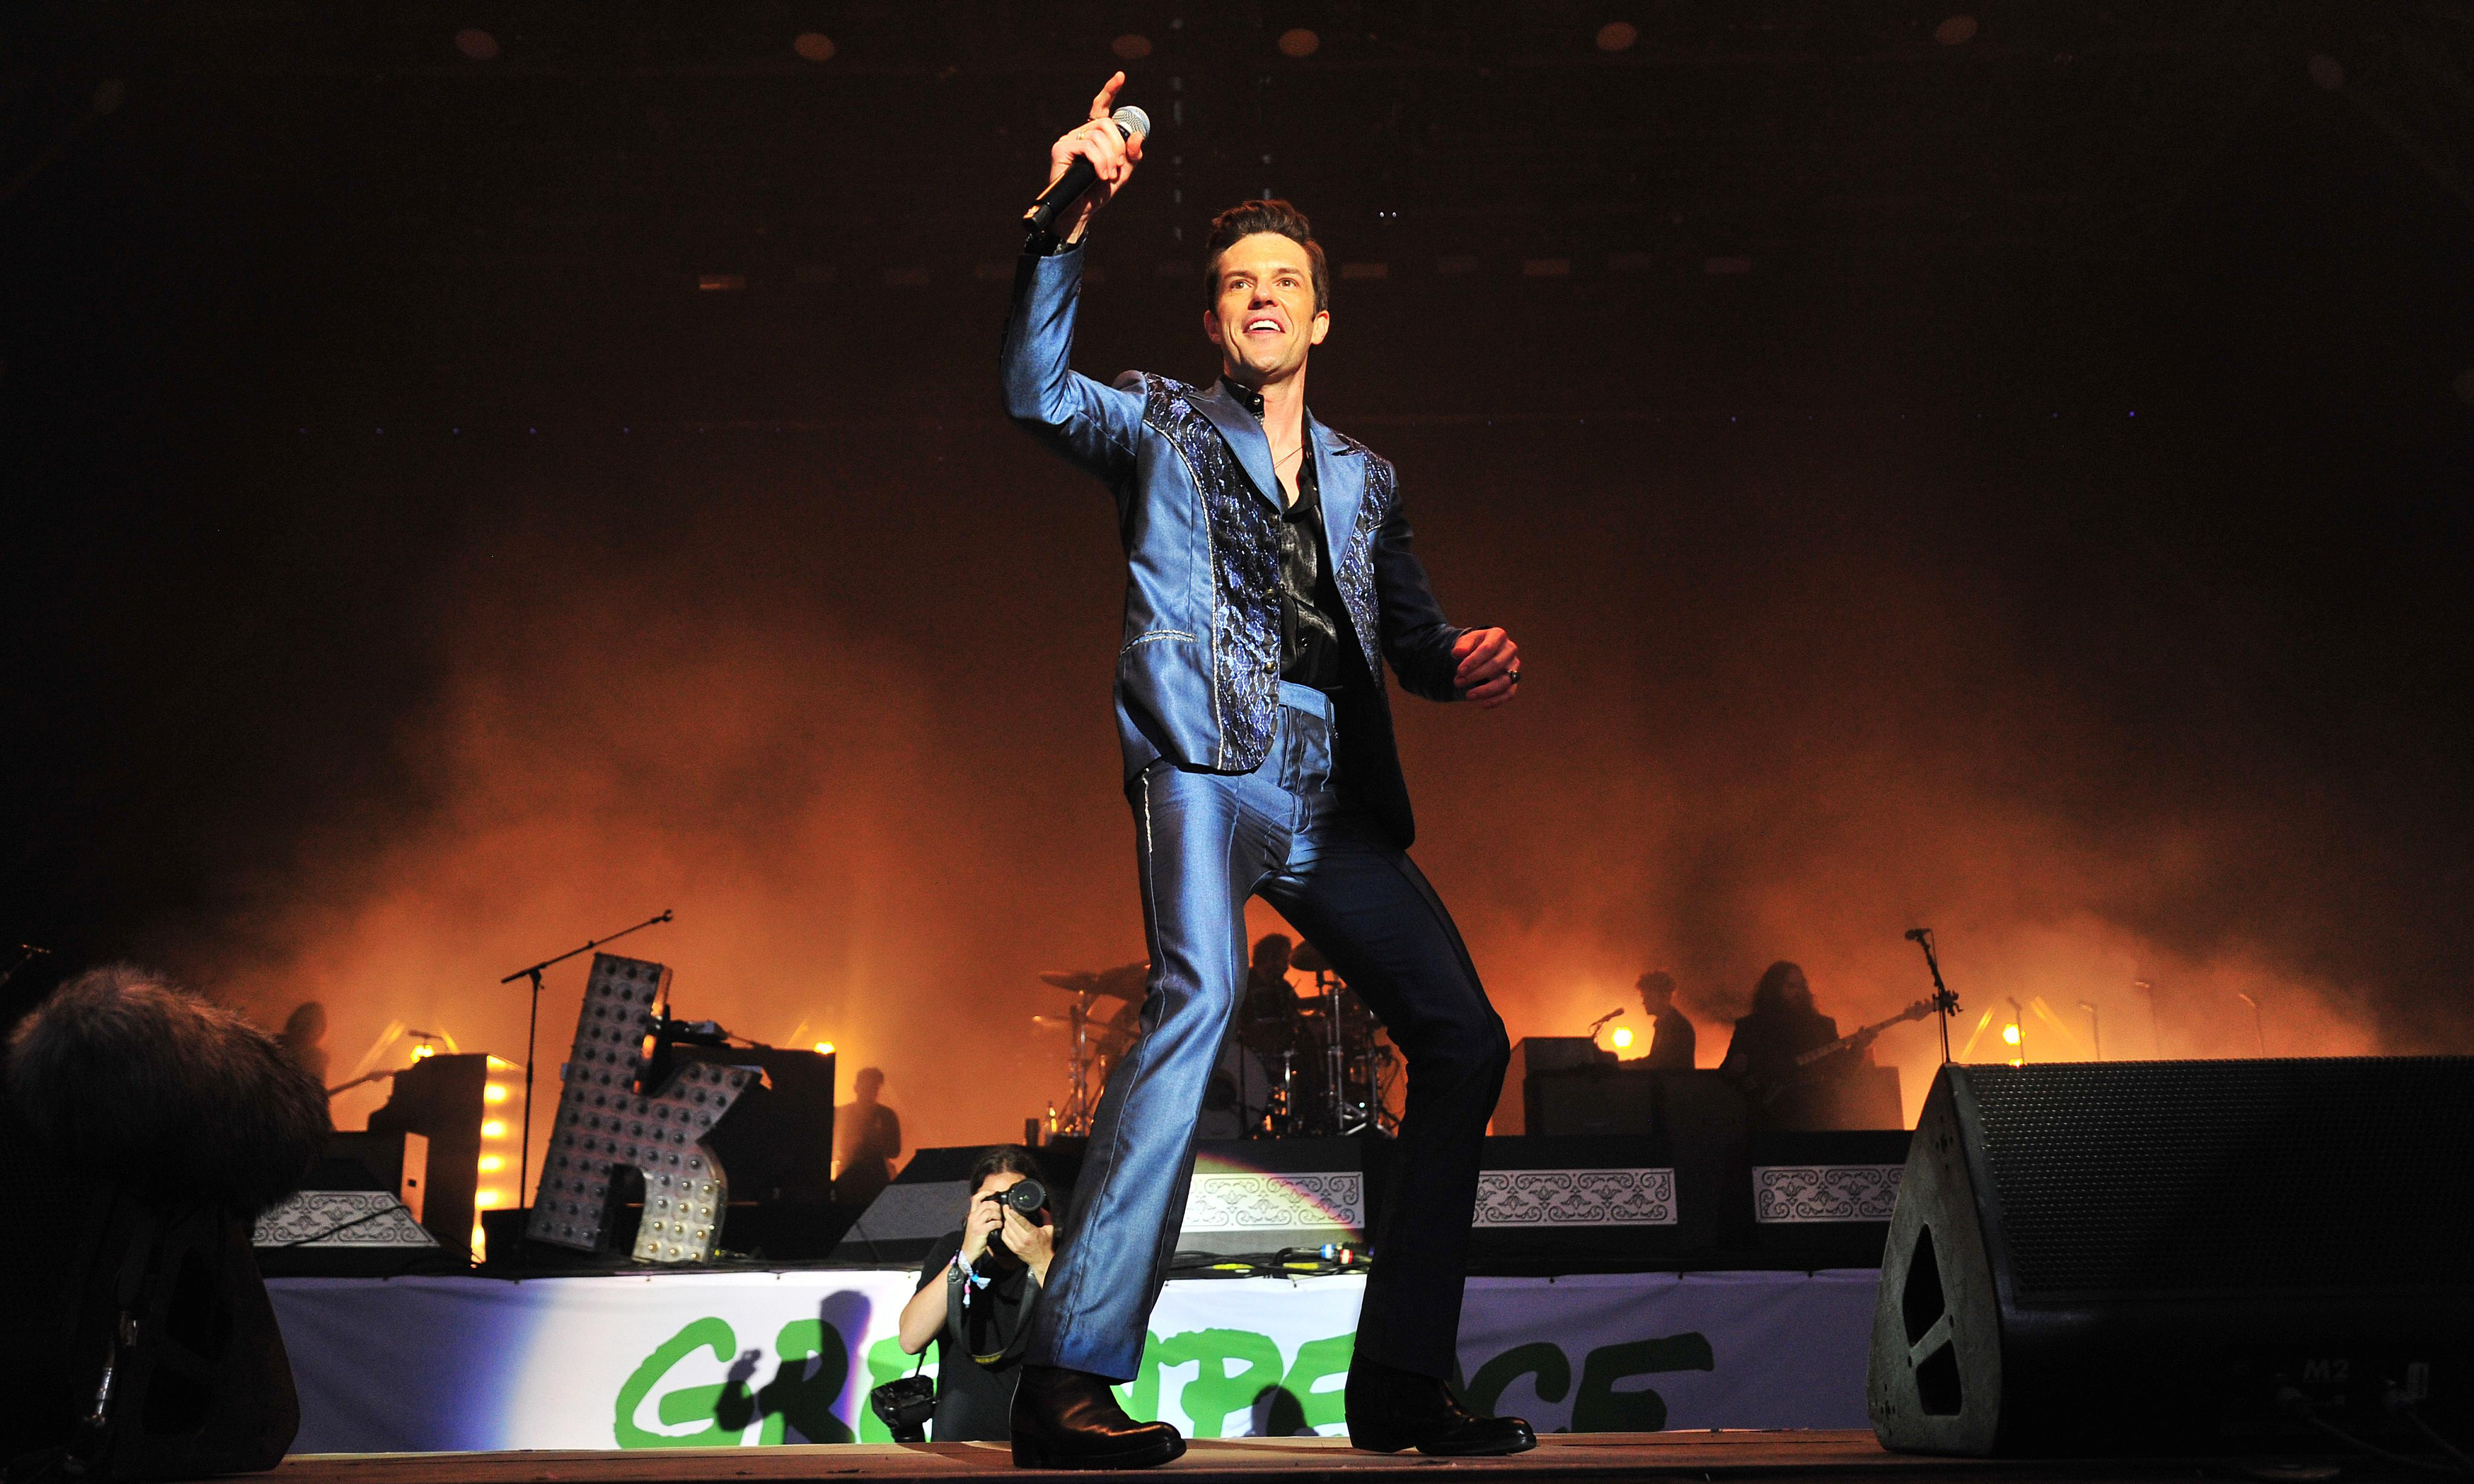 The Killers at Glastonbury 2019 review – anthemic headliners triumph